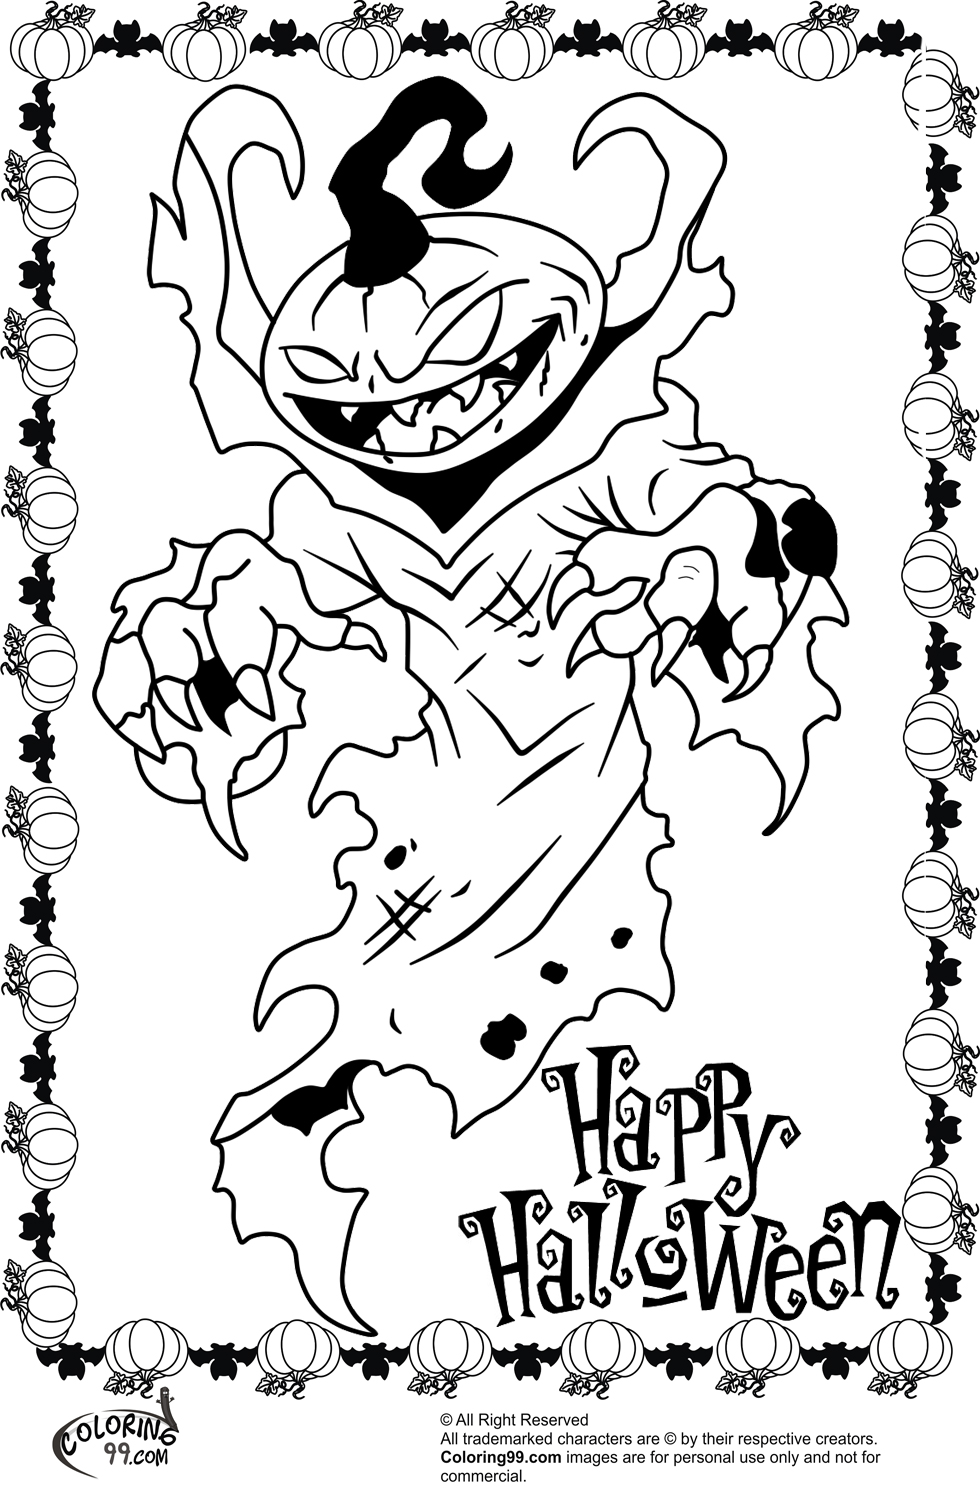 Halloween Drawing Designs at GetDrawings.com | Free for personal use ...